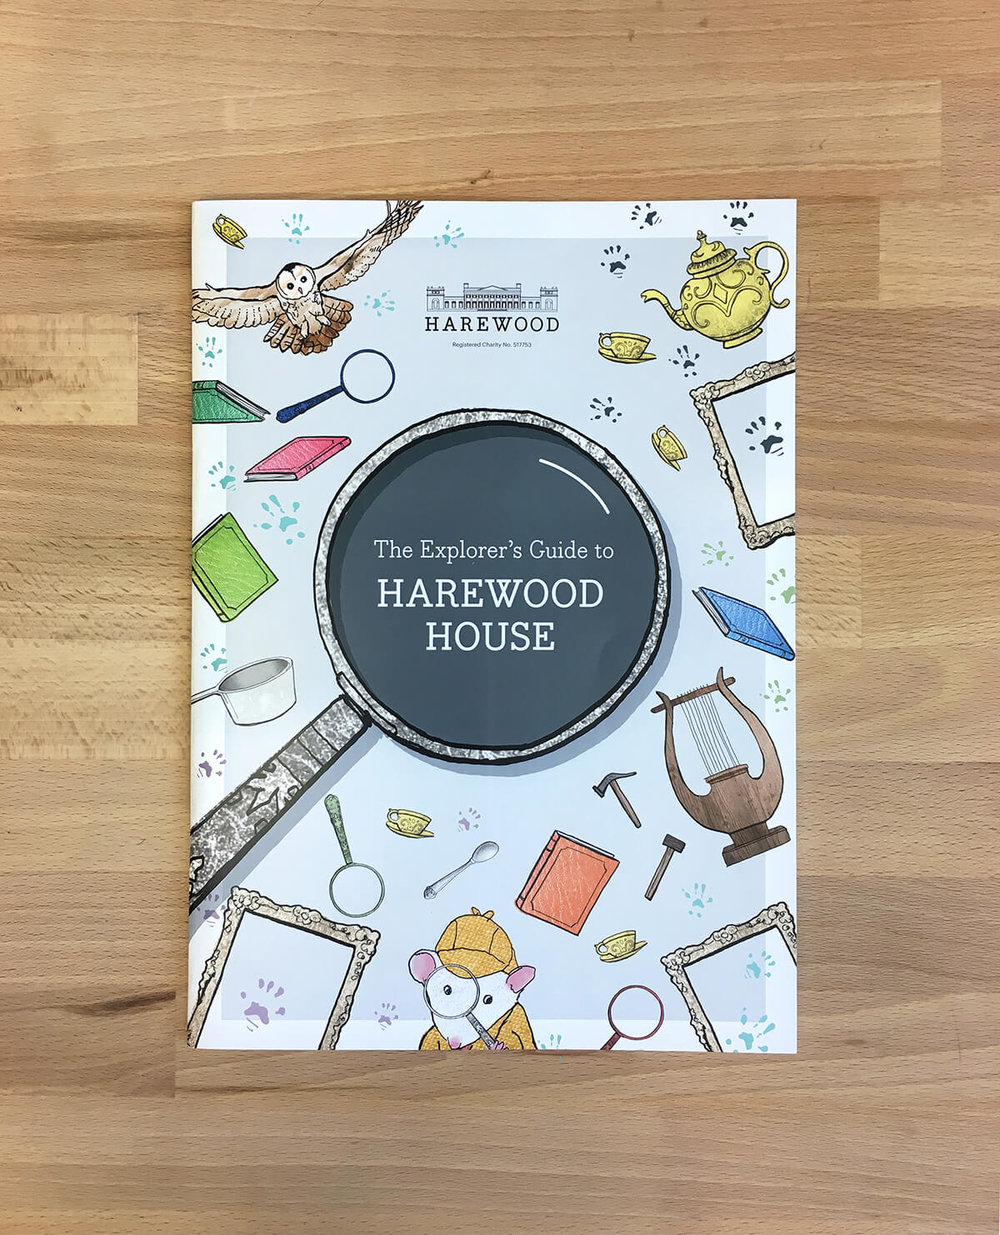 Harewood house illustrated cover